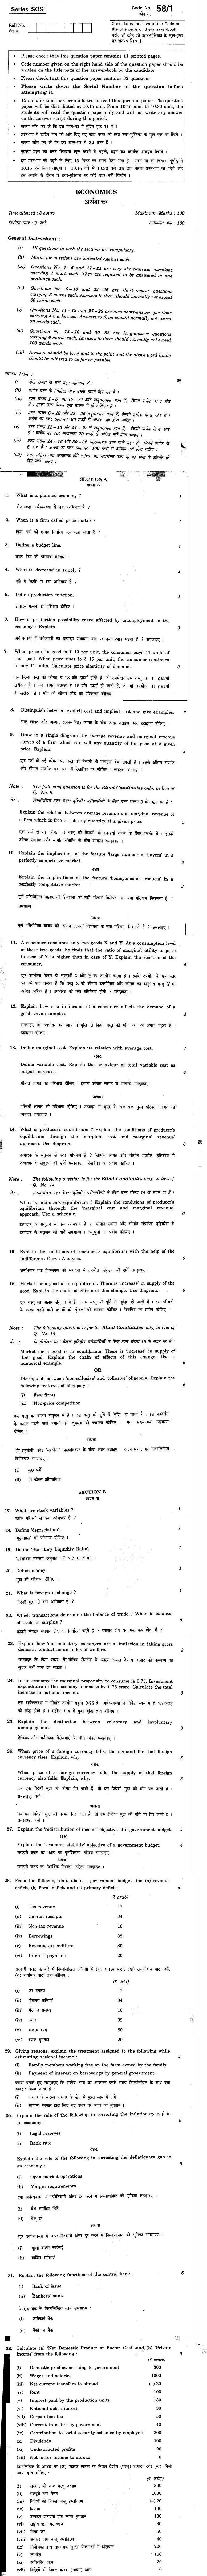 CBSE Class XII Previous Year Question Papers 2011 Economics